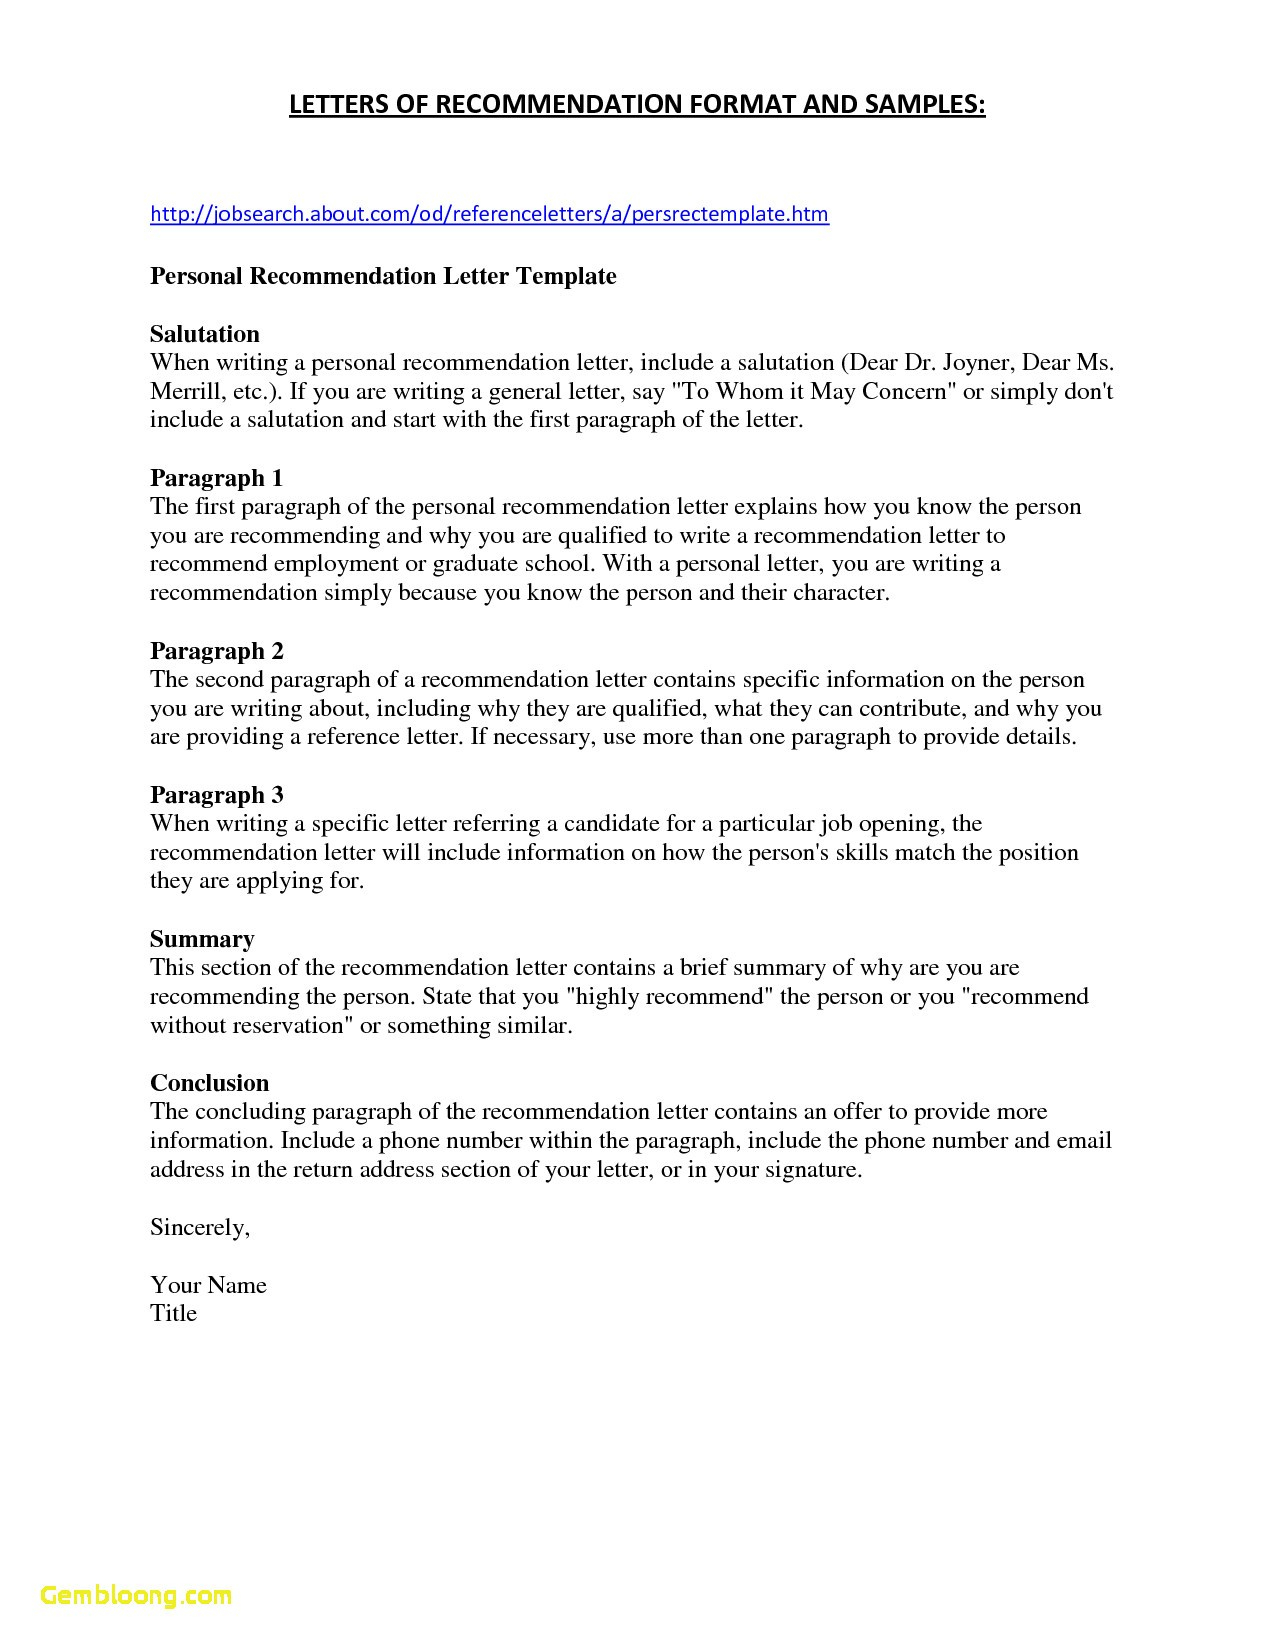 free recommendation letter template for employment example-How to Write A Good Re mendation Letter for A Job Fresh Hybrid Resume Template Free Download 20-i